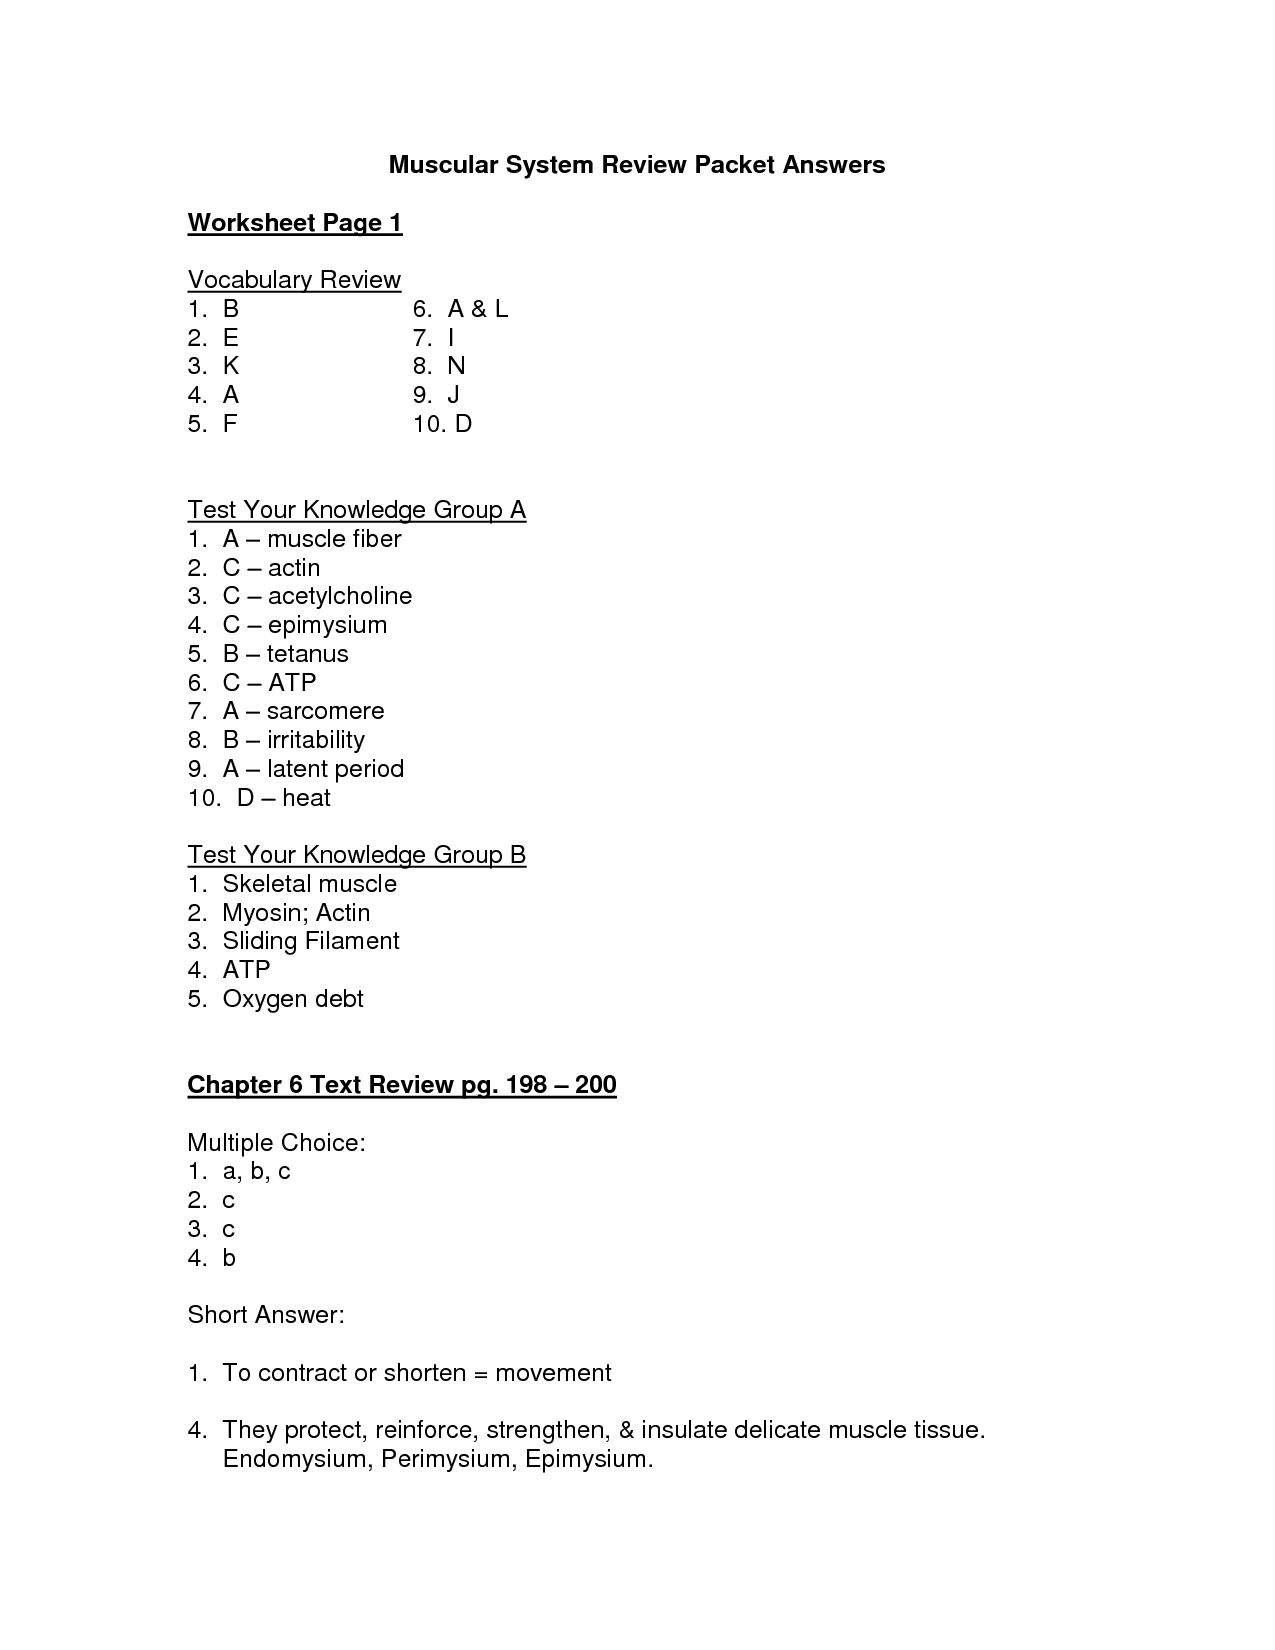 Digestive System Worksheet Answers  Briefencounters As Well As Digestive System Worksheet Pdf